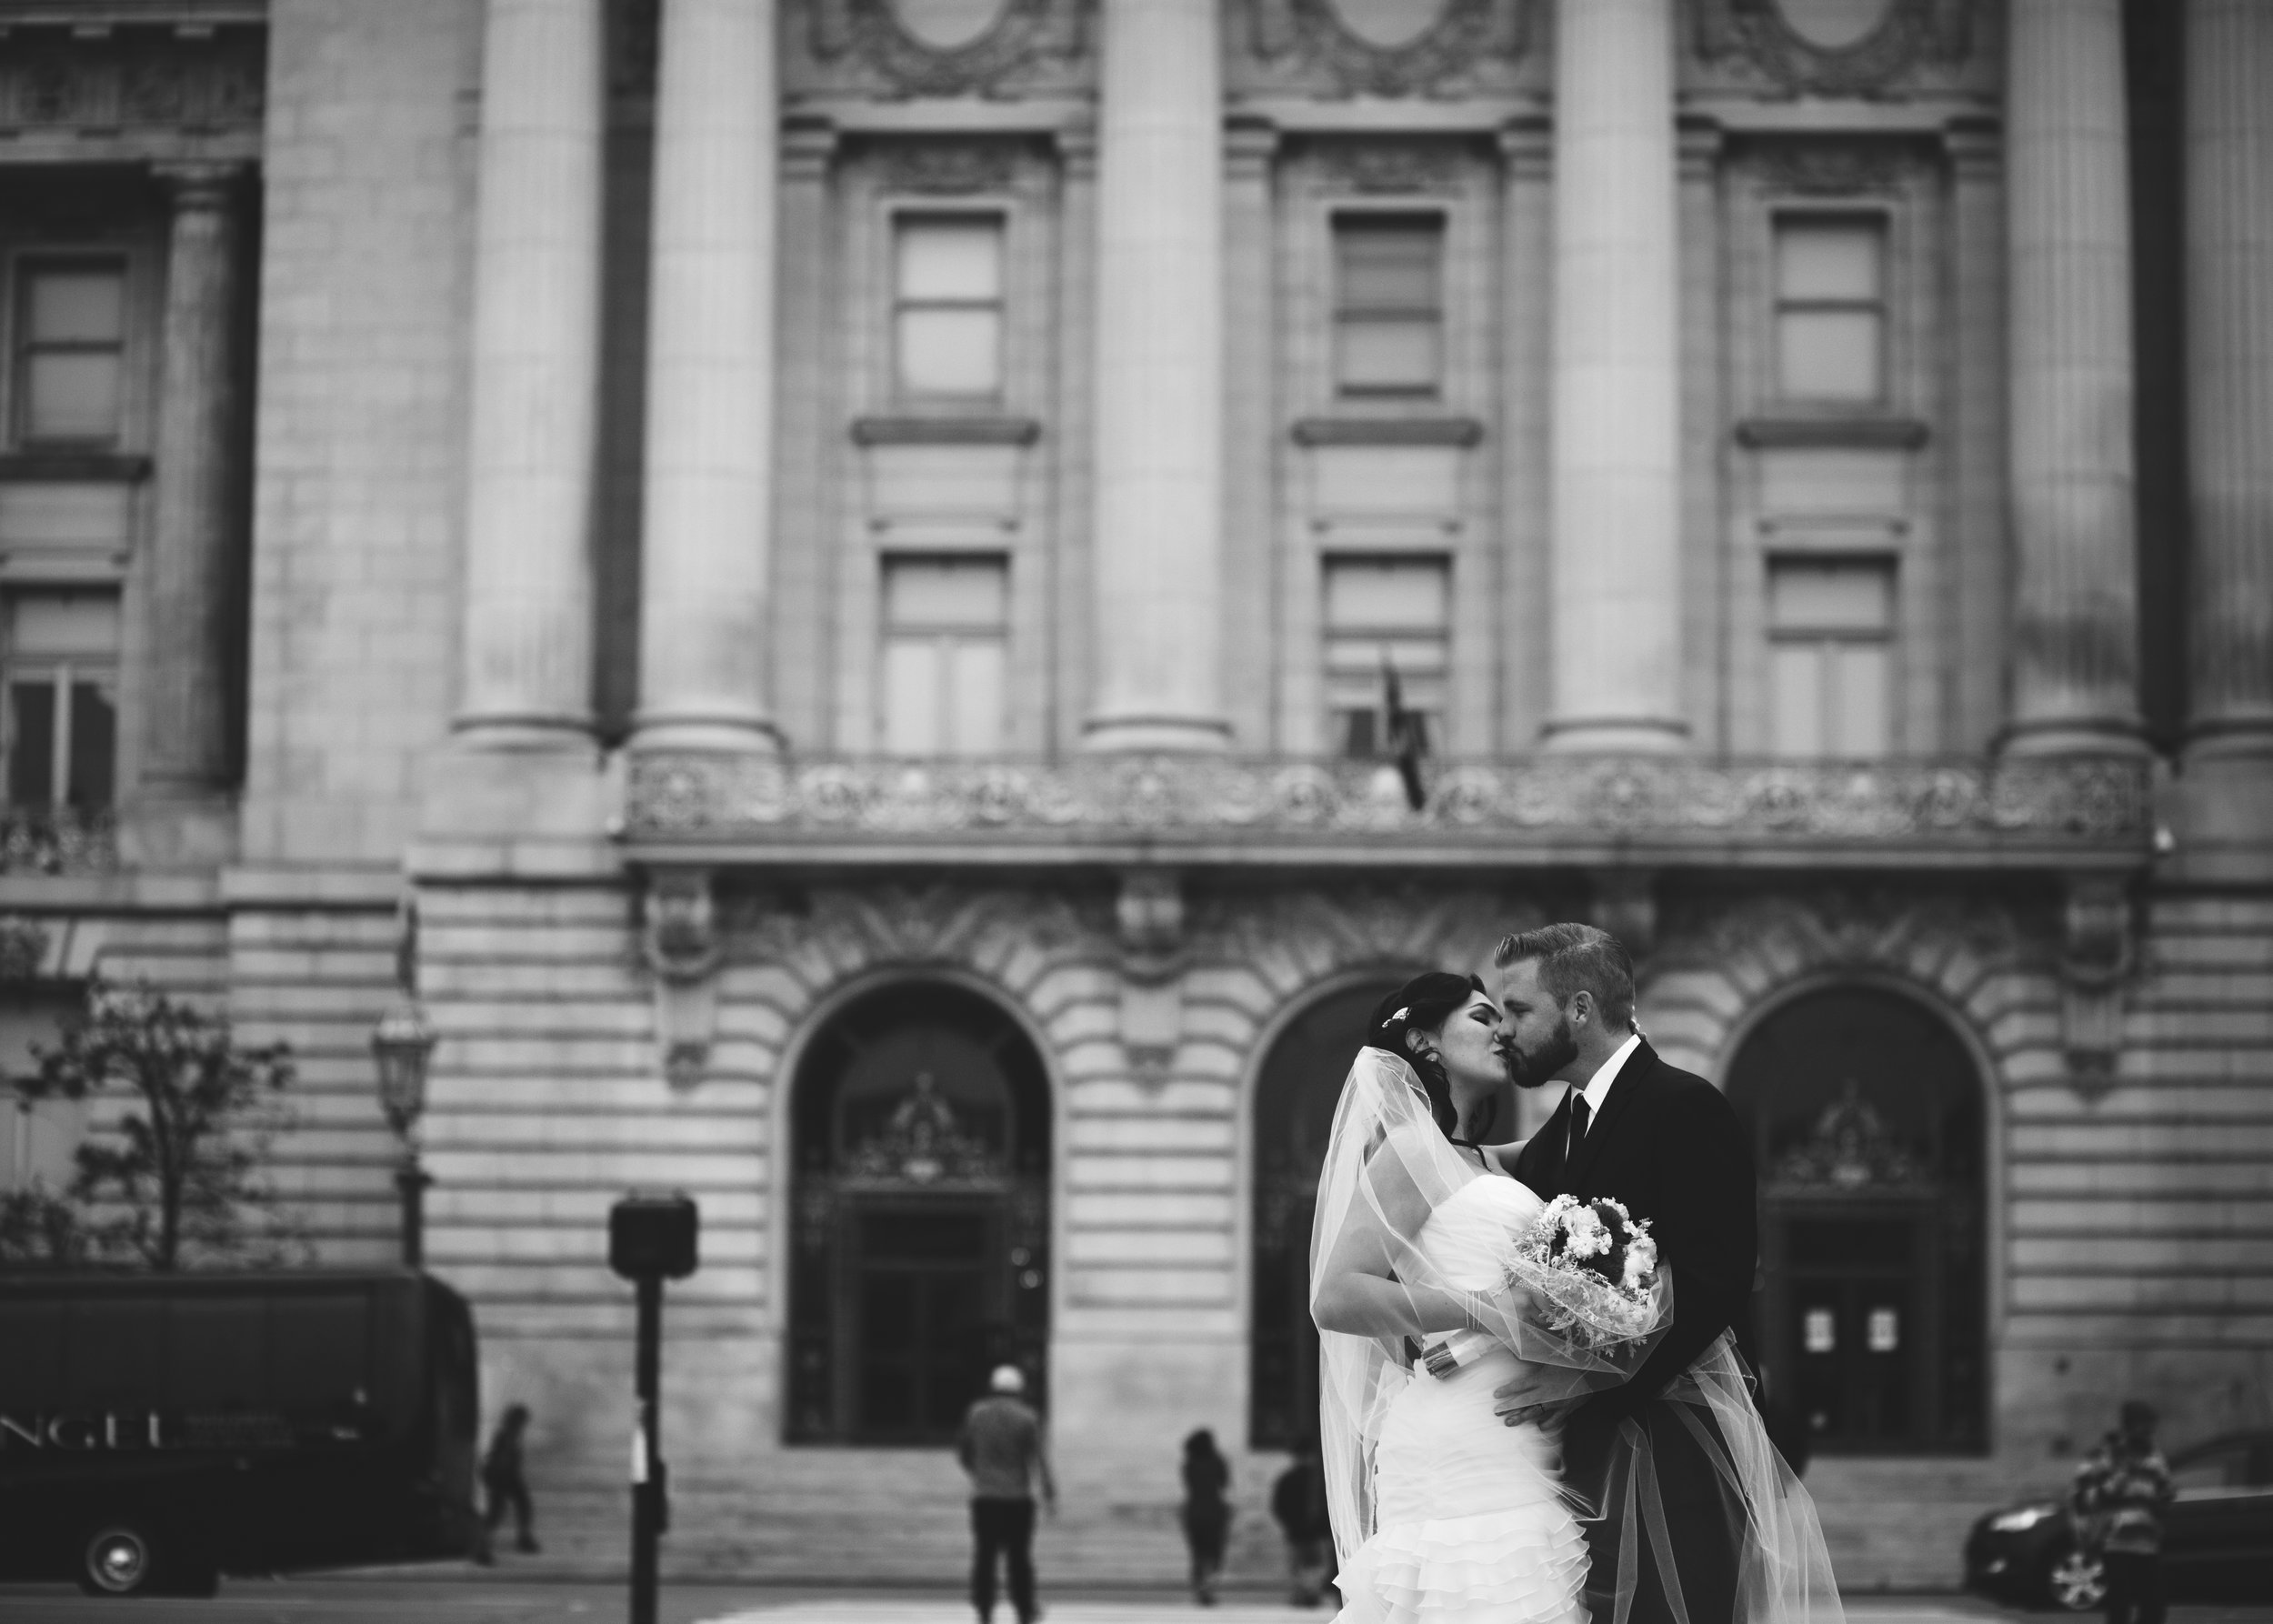 San Francisco City Hall Wedding Photographer 0017.JPG